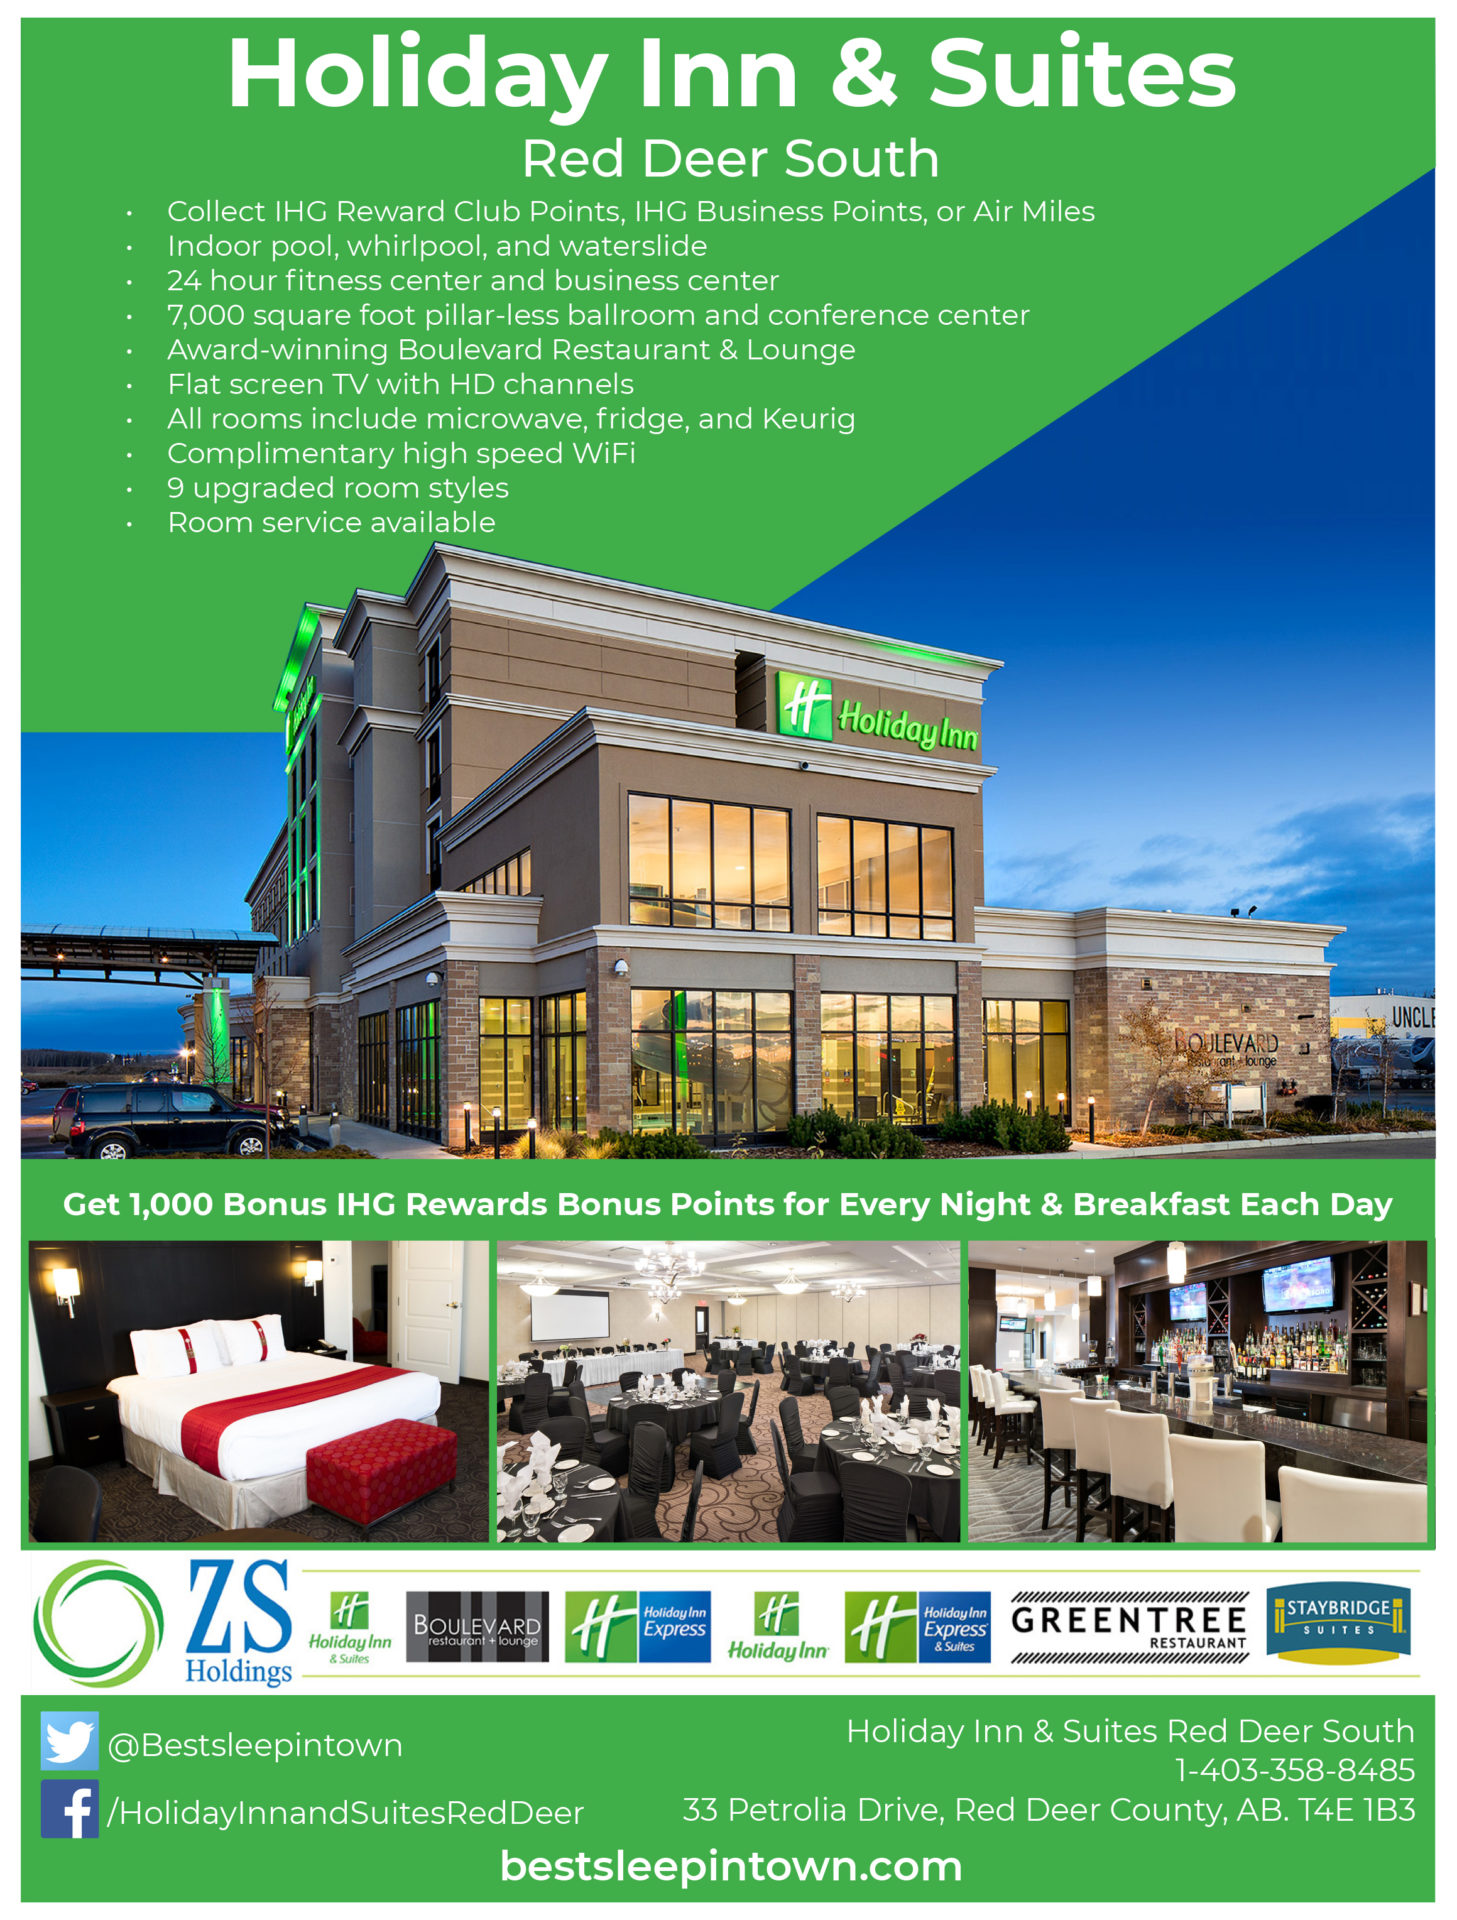 Holiday Inn & Suites hotel information sheet designed by Jay Gervais